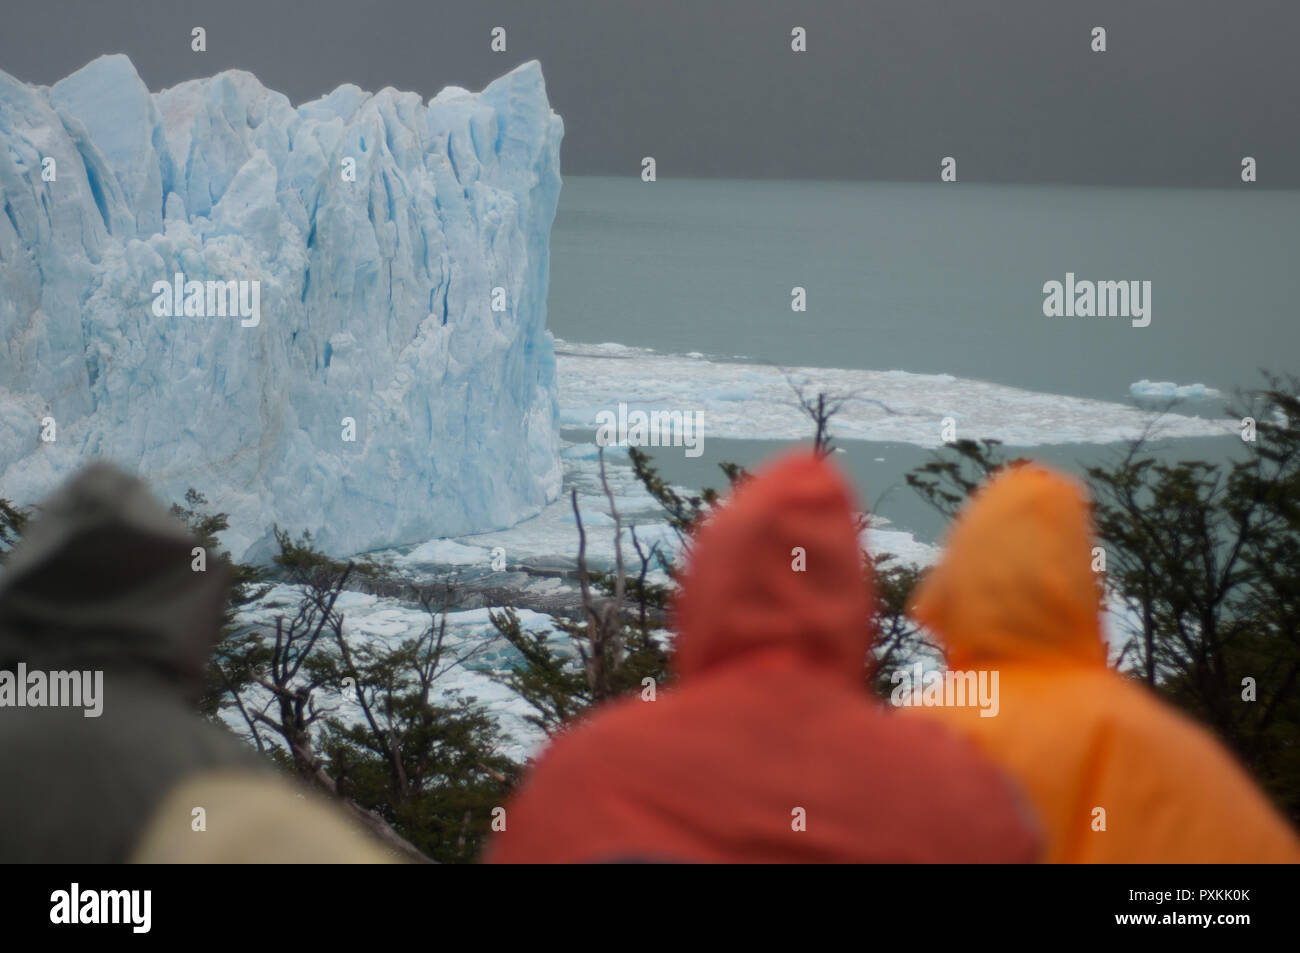 In an ordinary day of bad weather at Lake Argentino, admiring the glacier  Perito Moreno and his melt in the lake - Stock Image